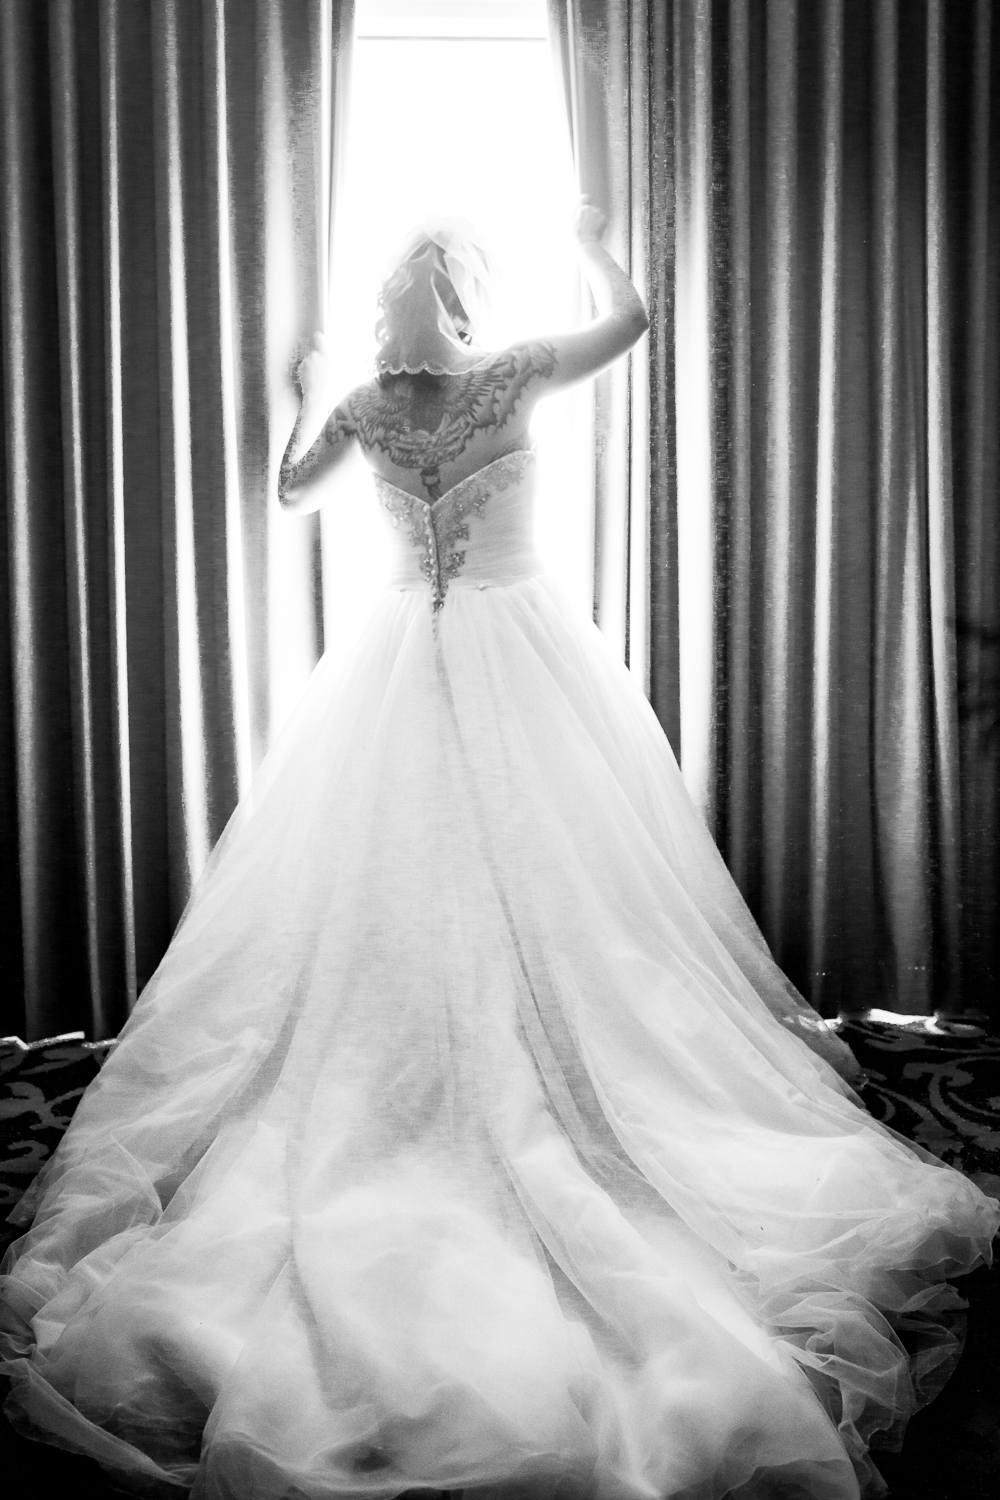 Bride-Portrait-Wedding-Photography-20.jpg